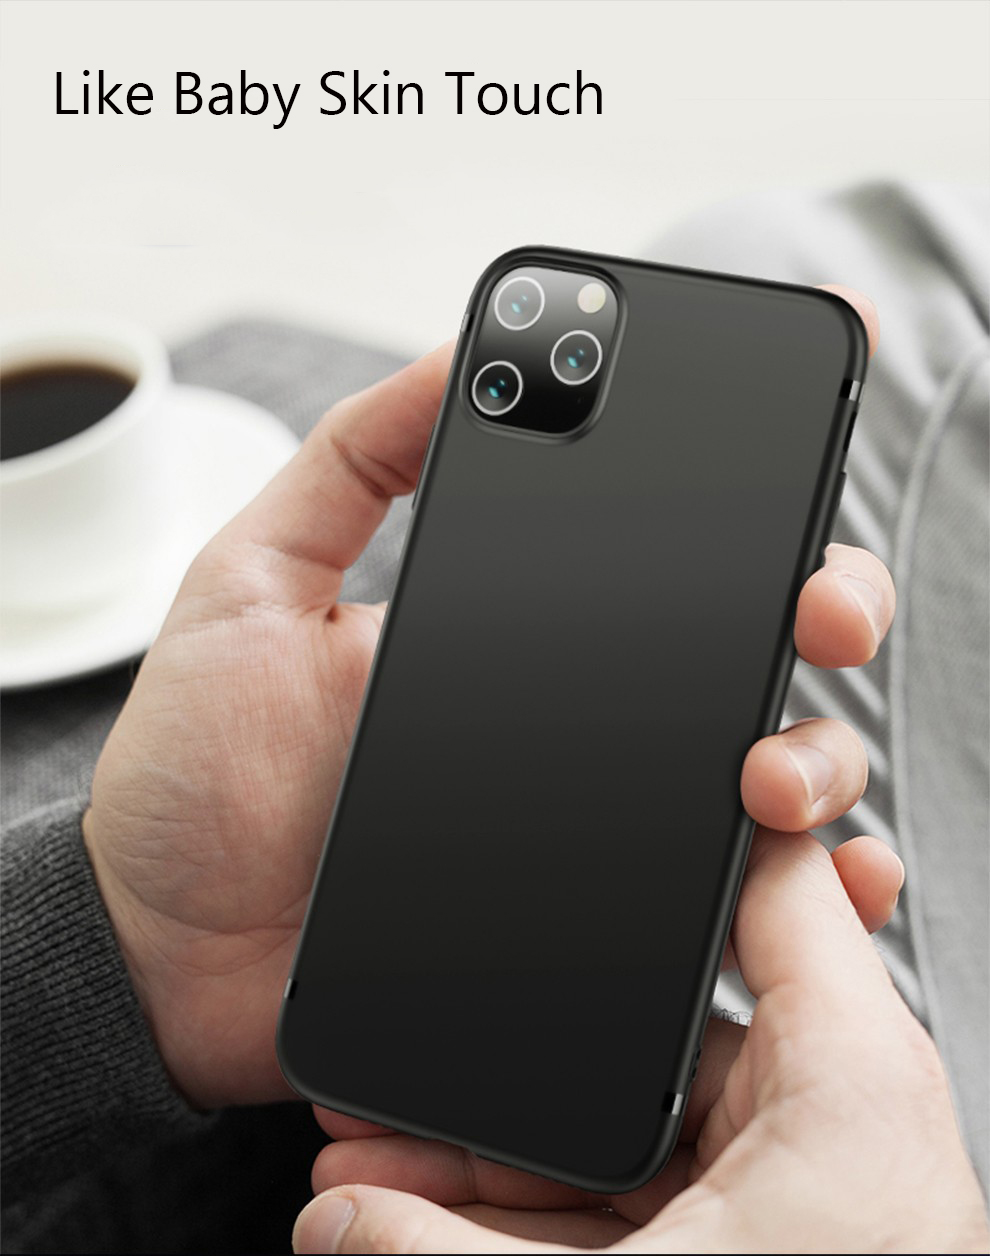 Lainergie Soft TPU Silicone Case for iPhone 11/11 Pro/11 Pro Max 67